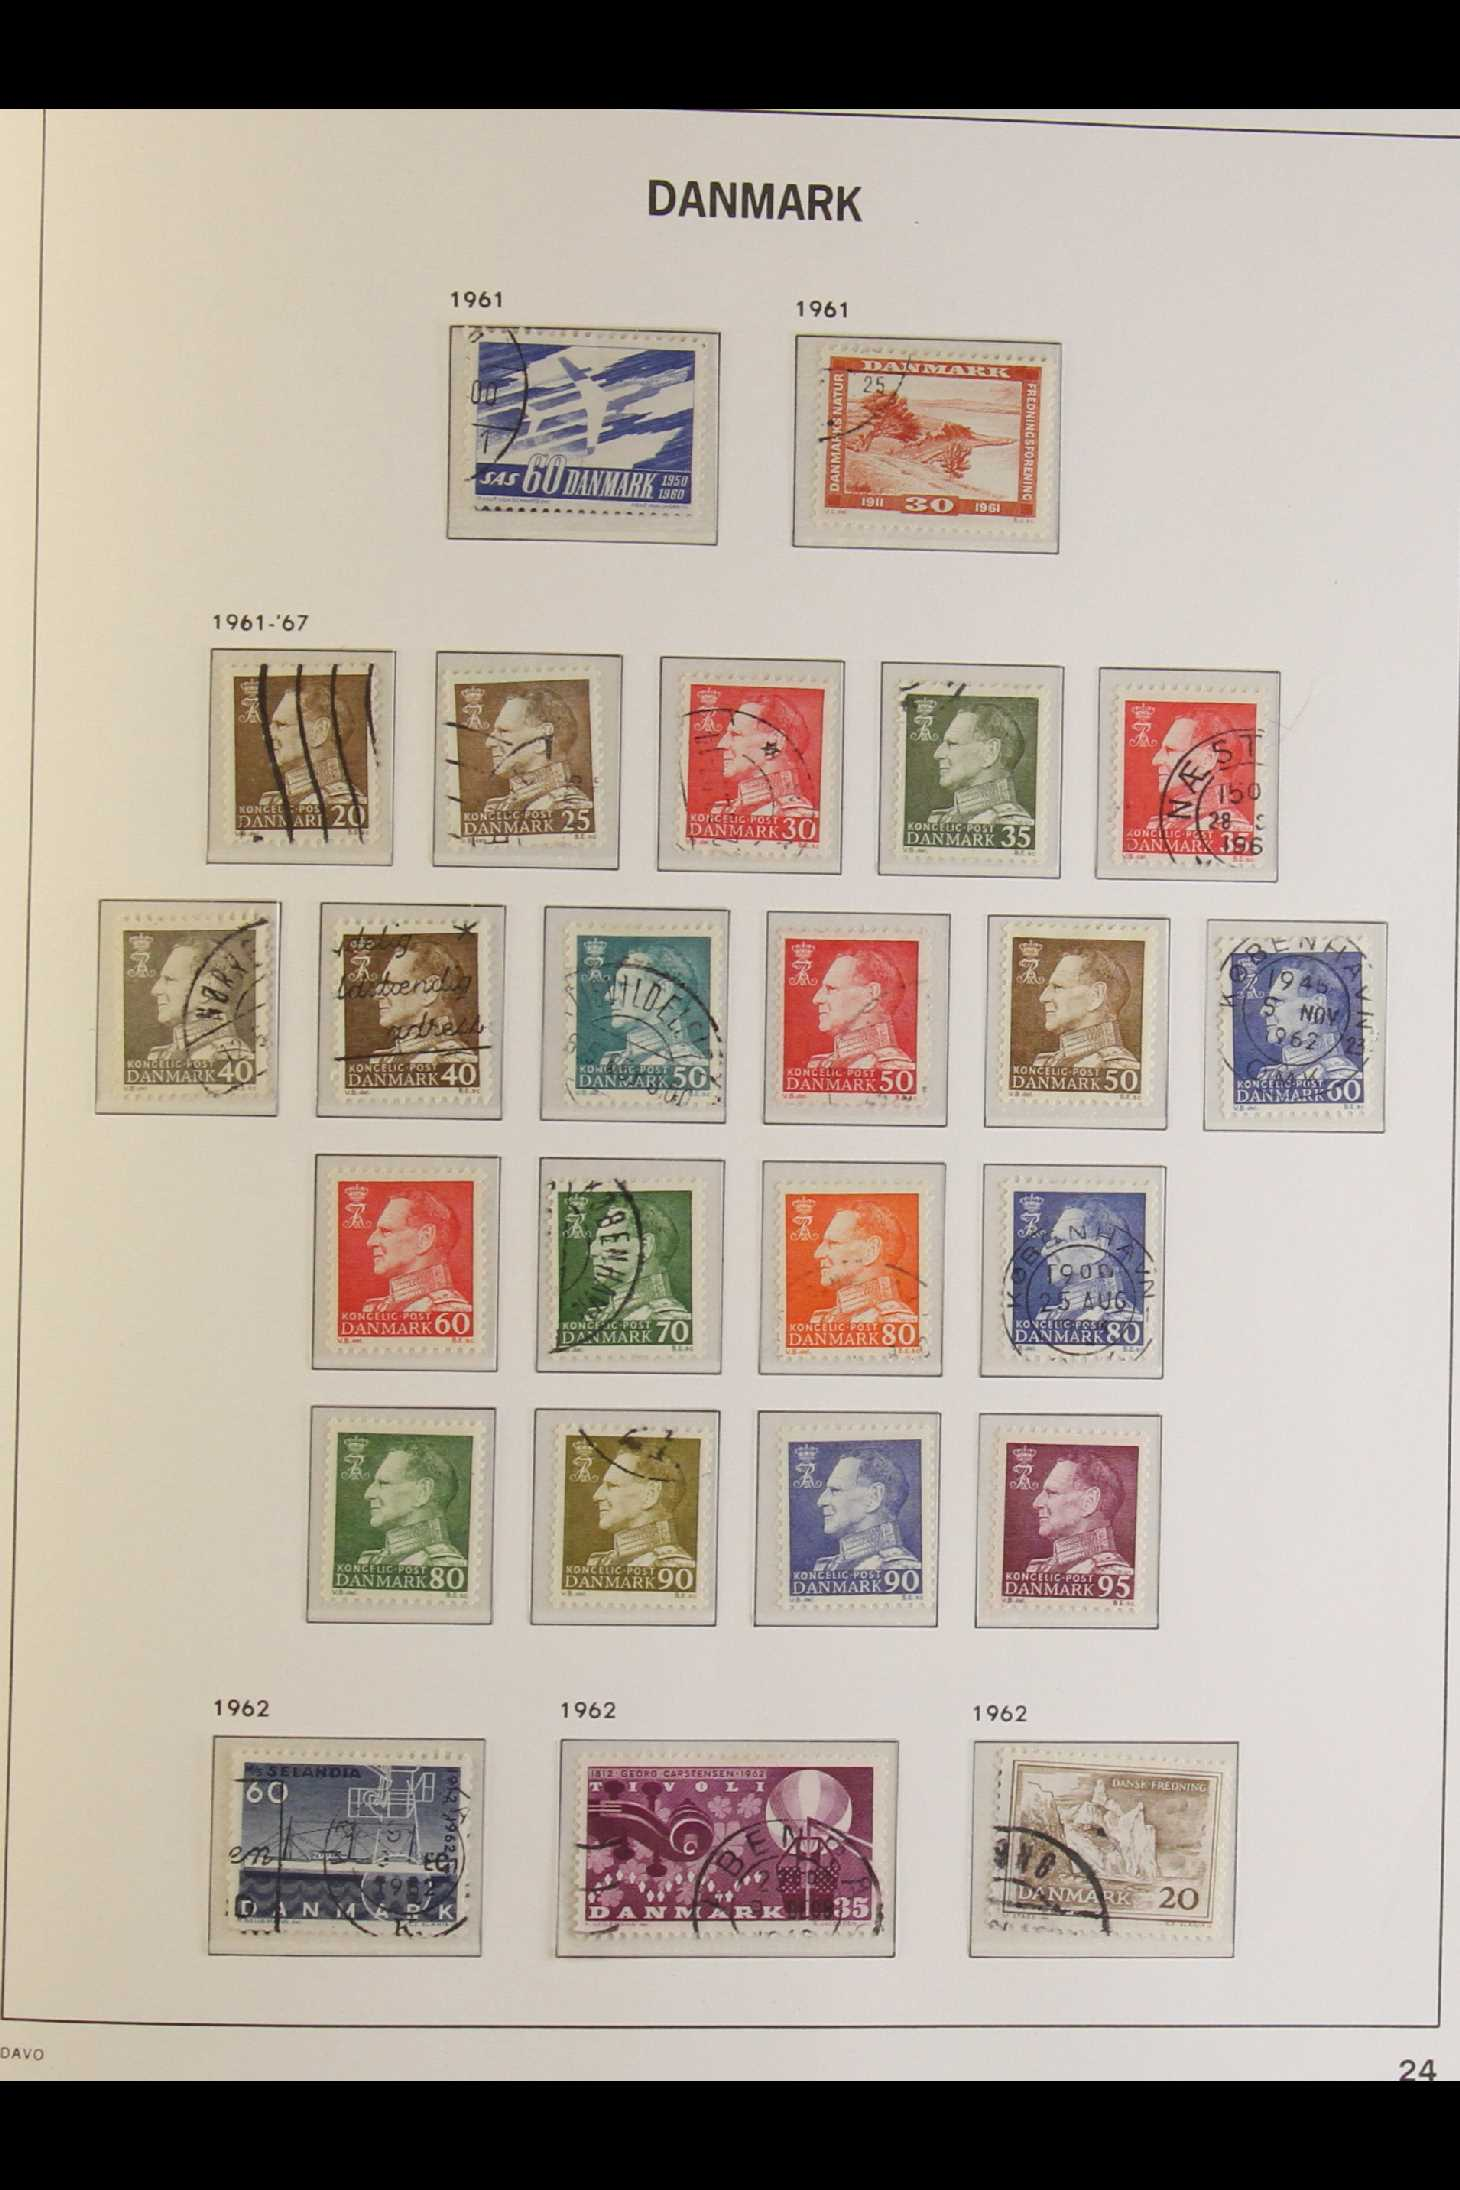 DENMARK 1882-1969 mint and used collection in an album incl. 1882 (small corner figures) 5 ore and - Image 11 of 15